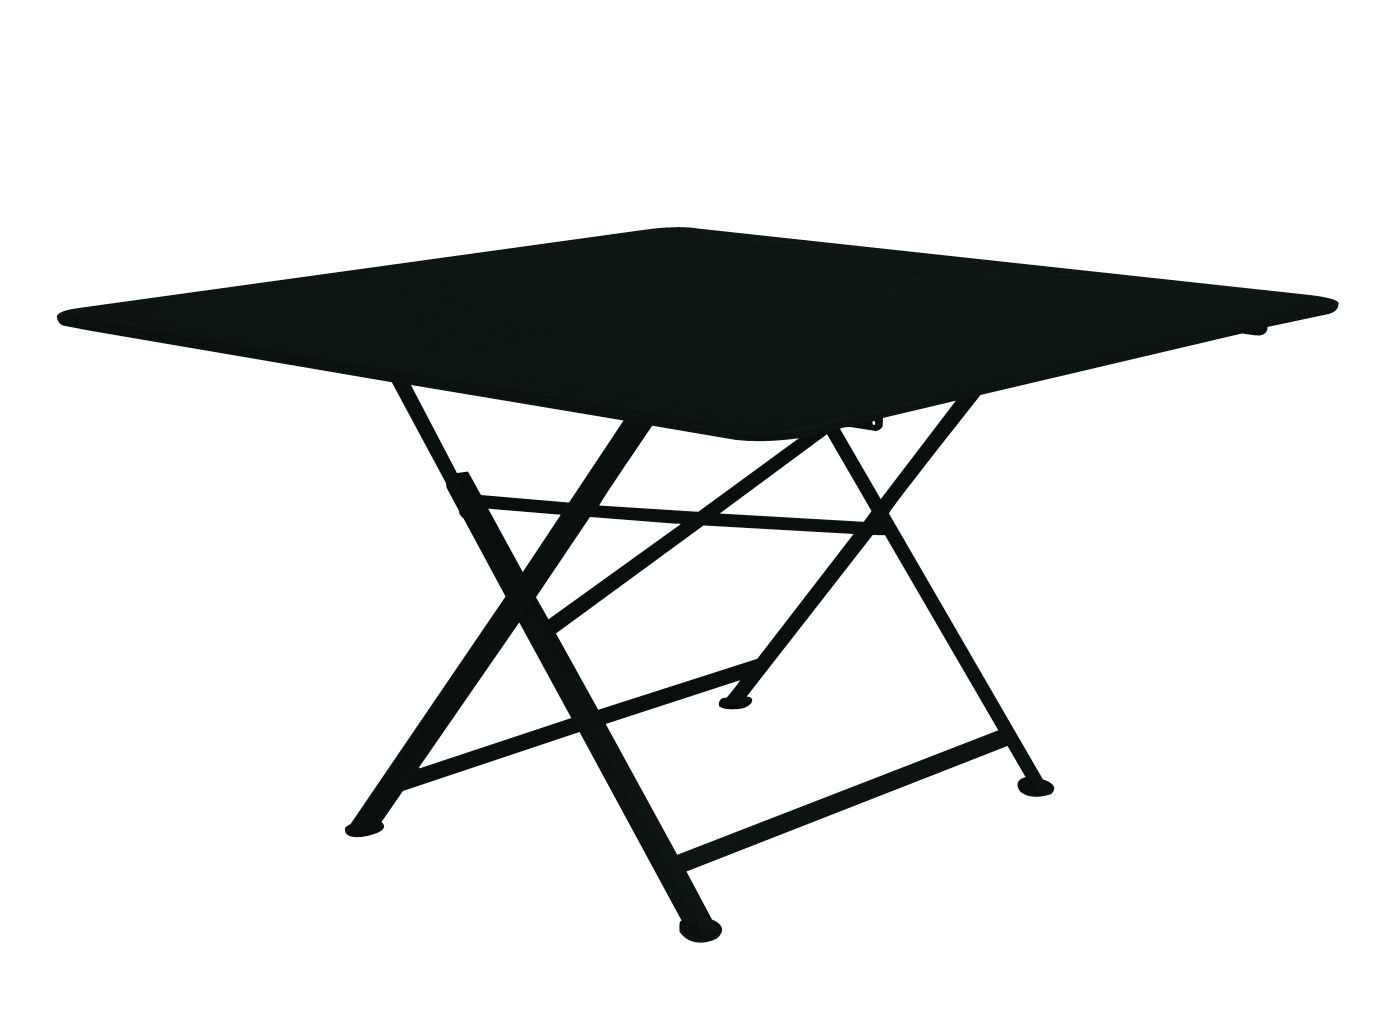 cargo foldable table 128 x 128 cm liquorice by fermob. Black Bedroom Furniture Sets. Home Design Ideas